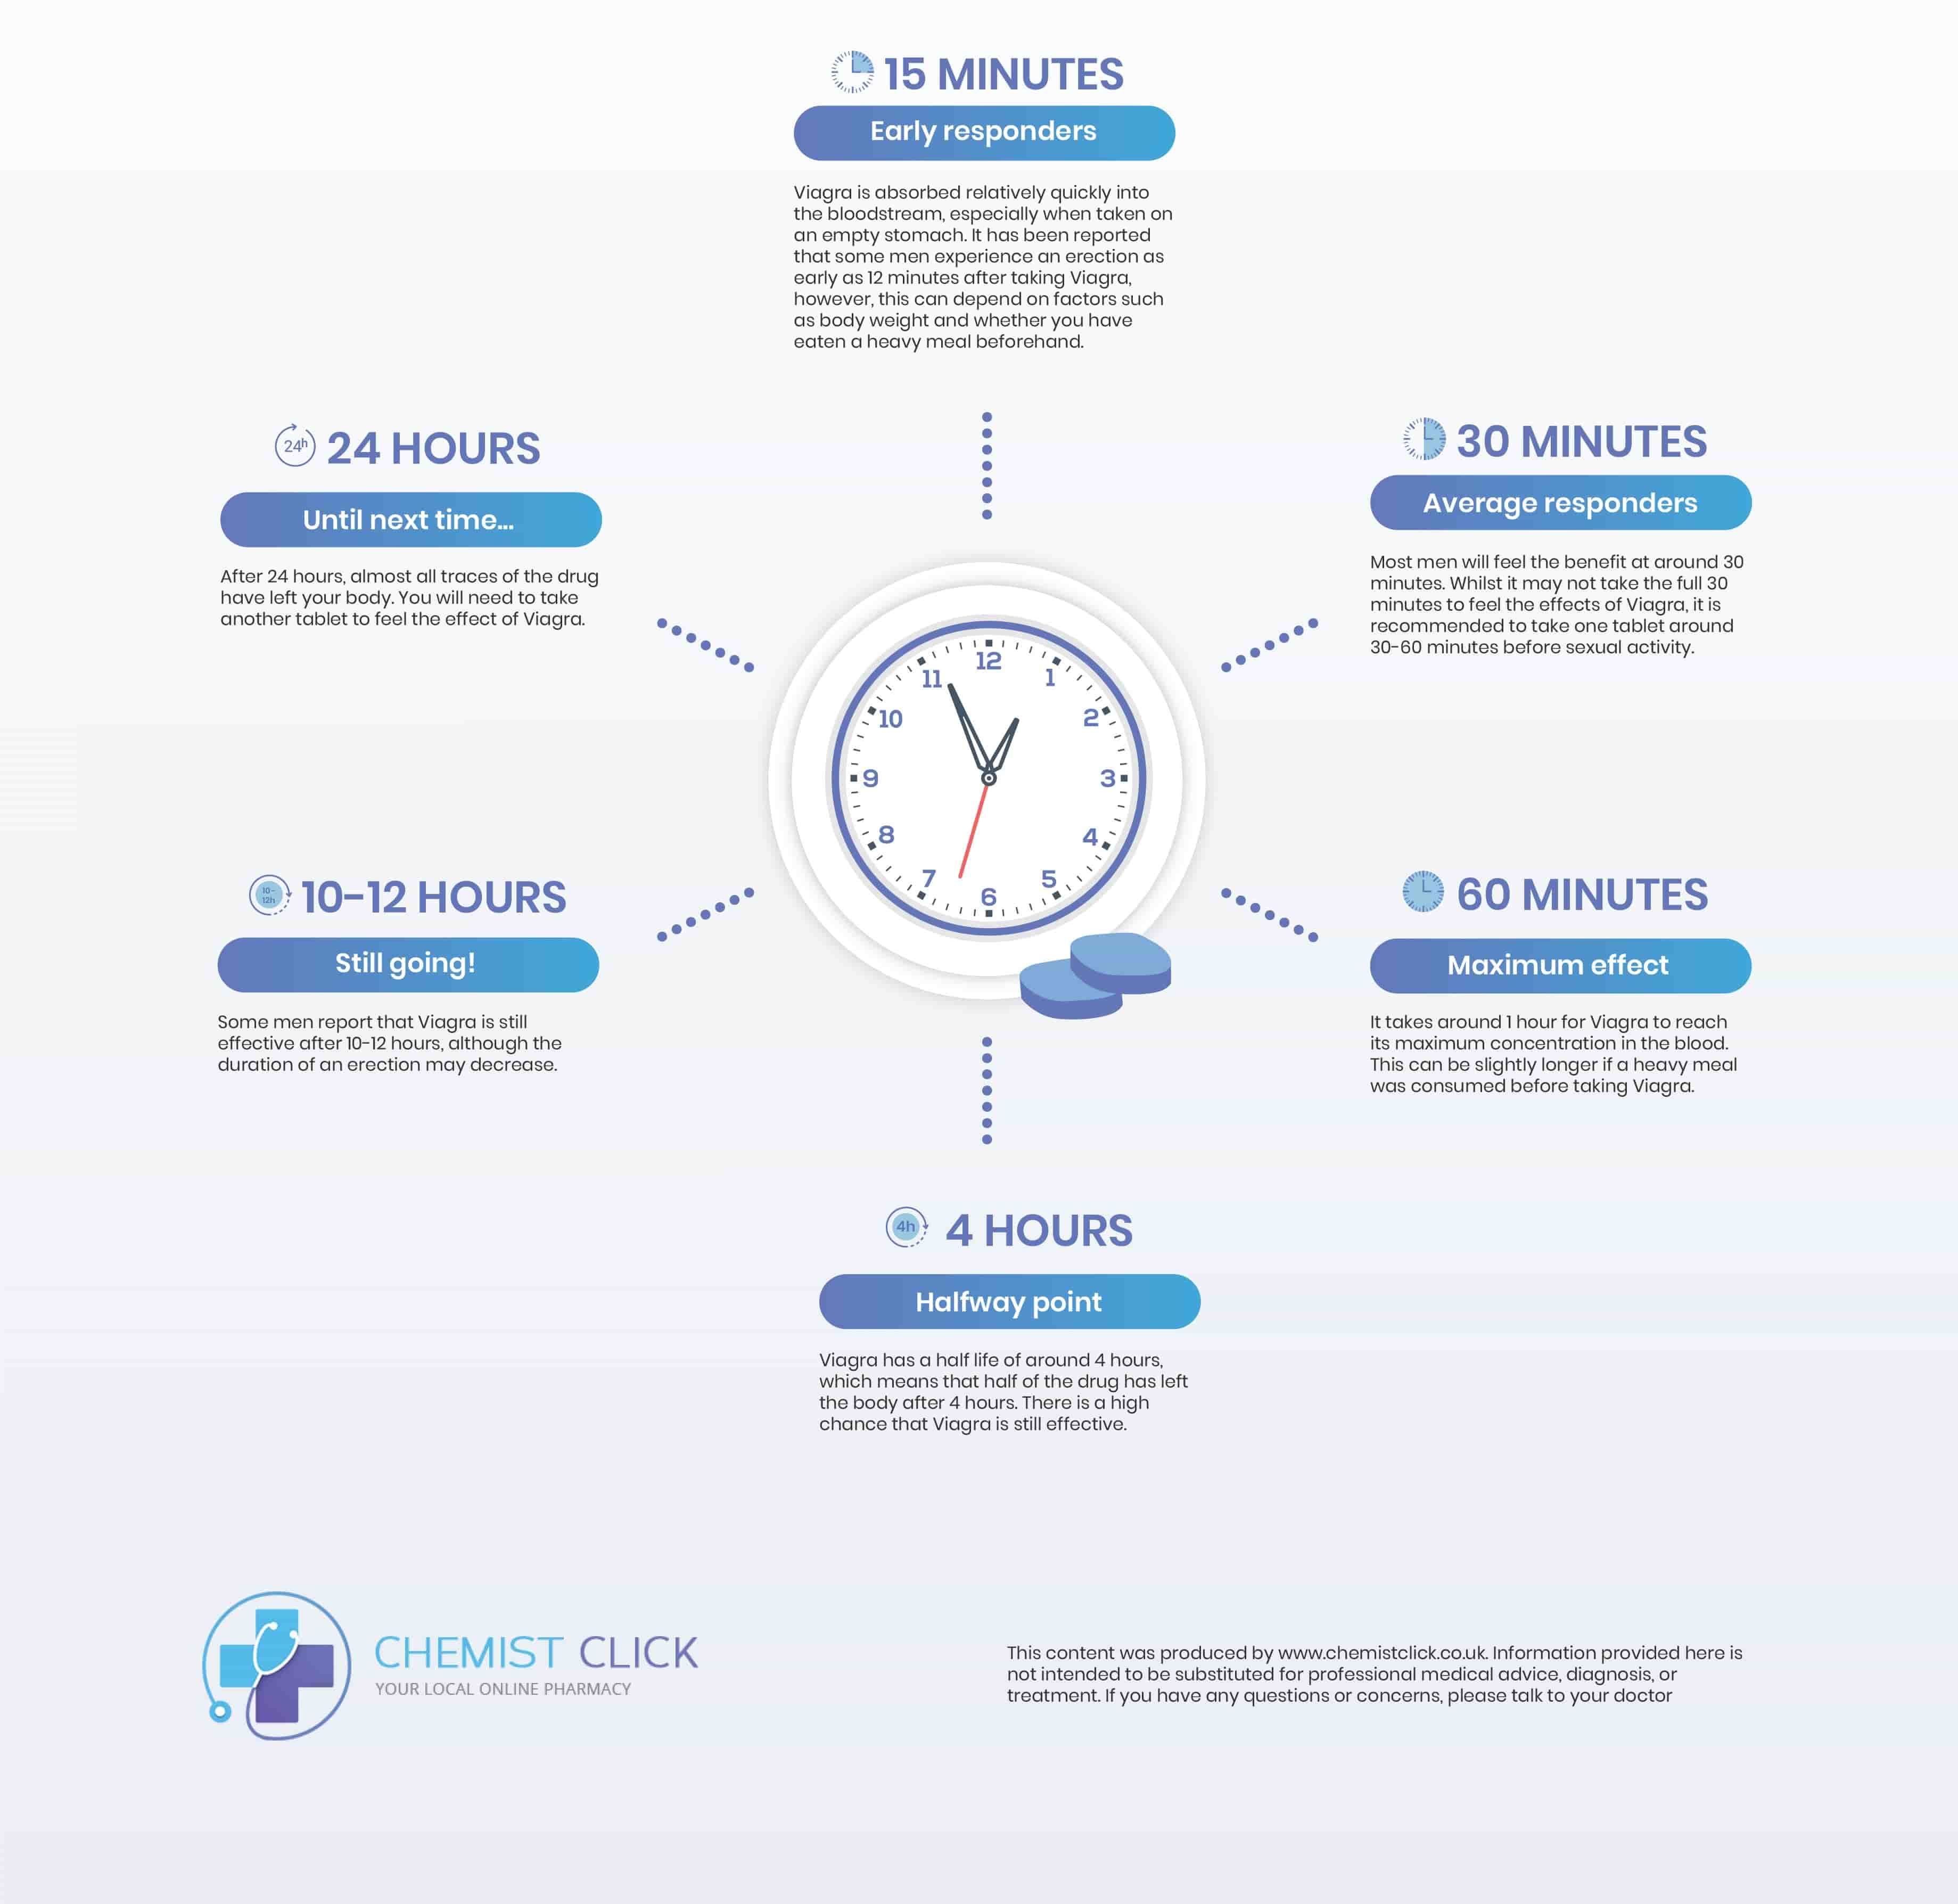 timeline showing how long Viagra lasts